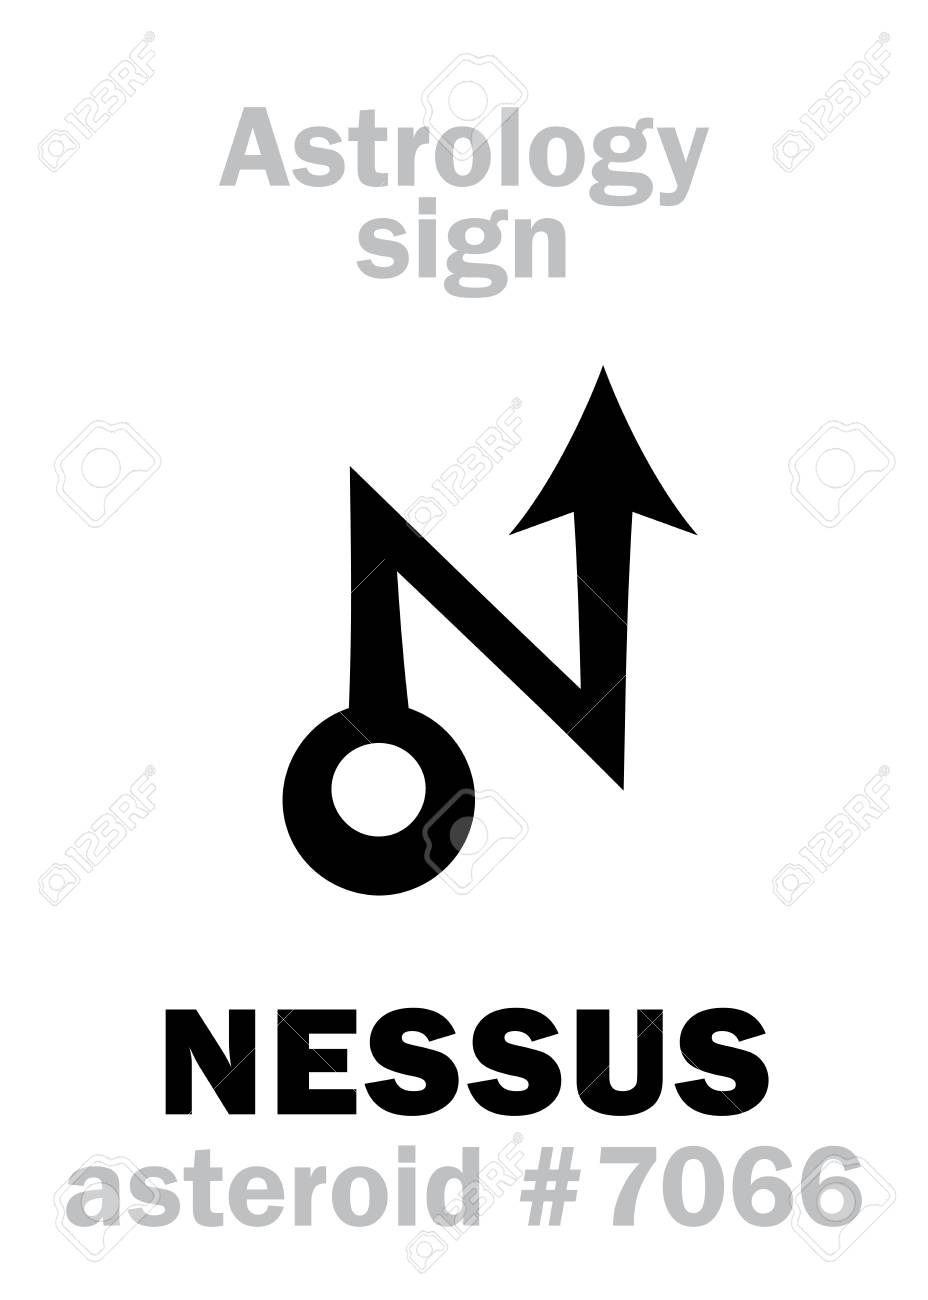 Astrology Alphabet: NESSUS, asteroid #7066, cis-Neptunian object